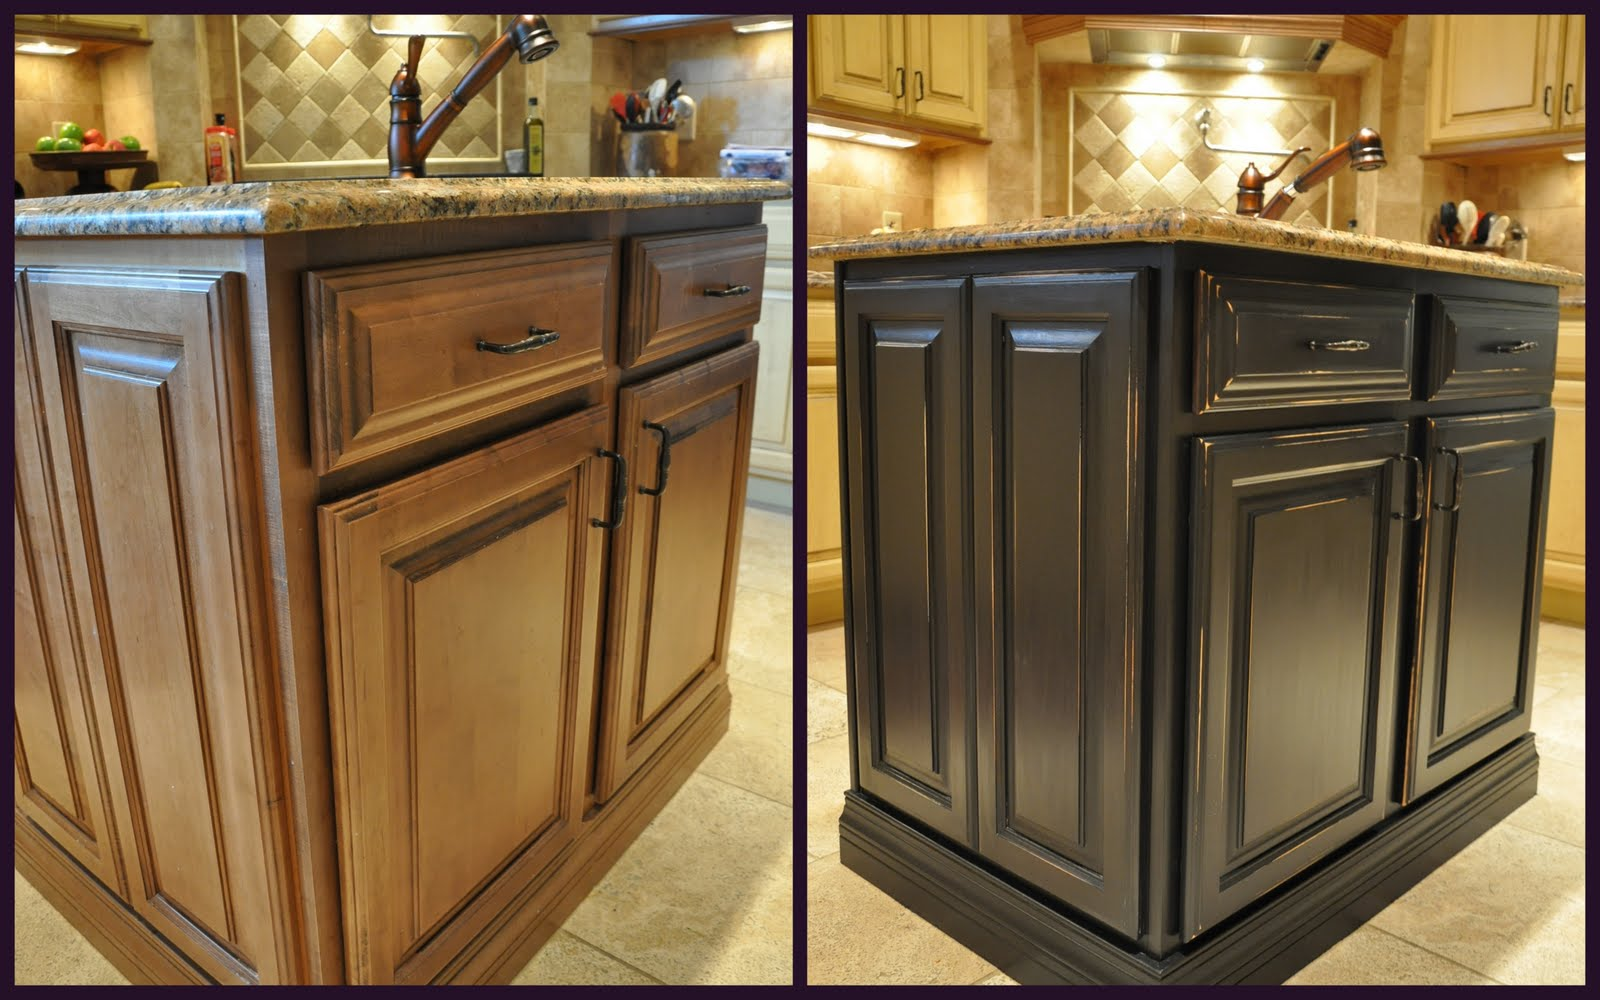 painted kitchen islandsHow to Paint a Kitchen Island  Part 1  Evolution of Style